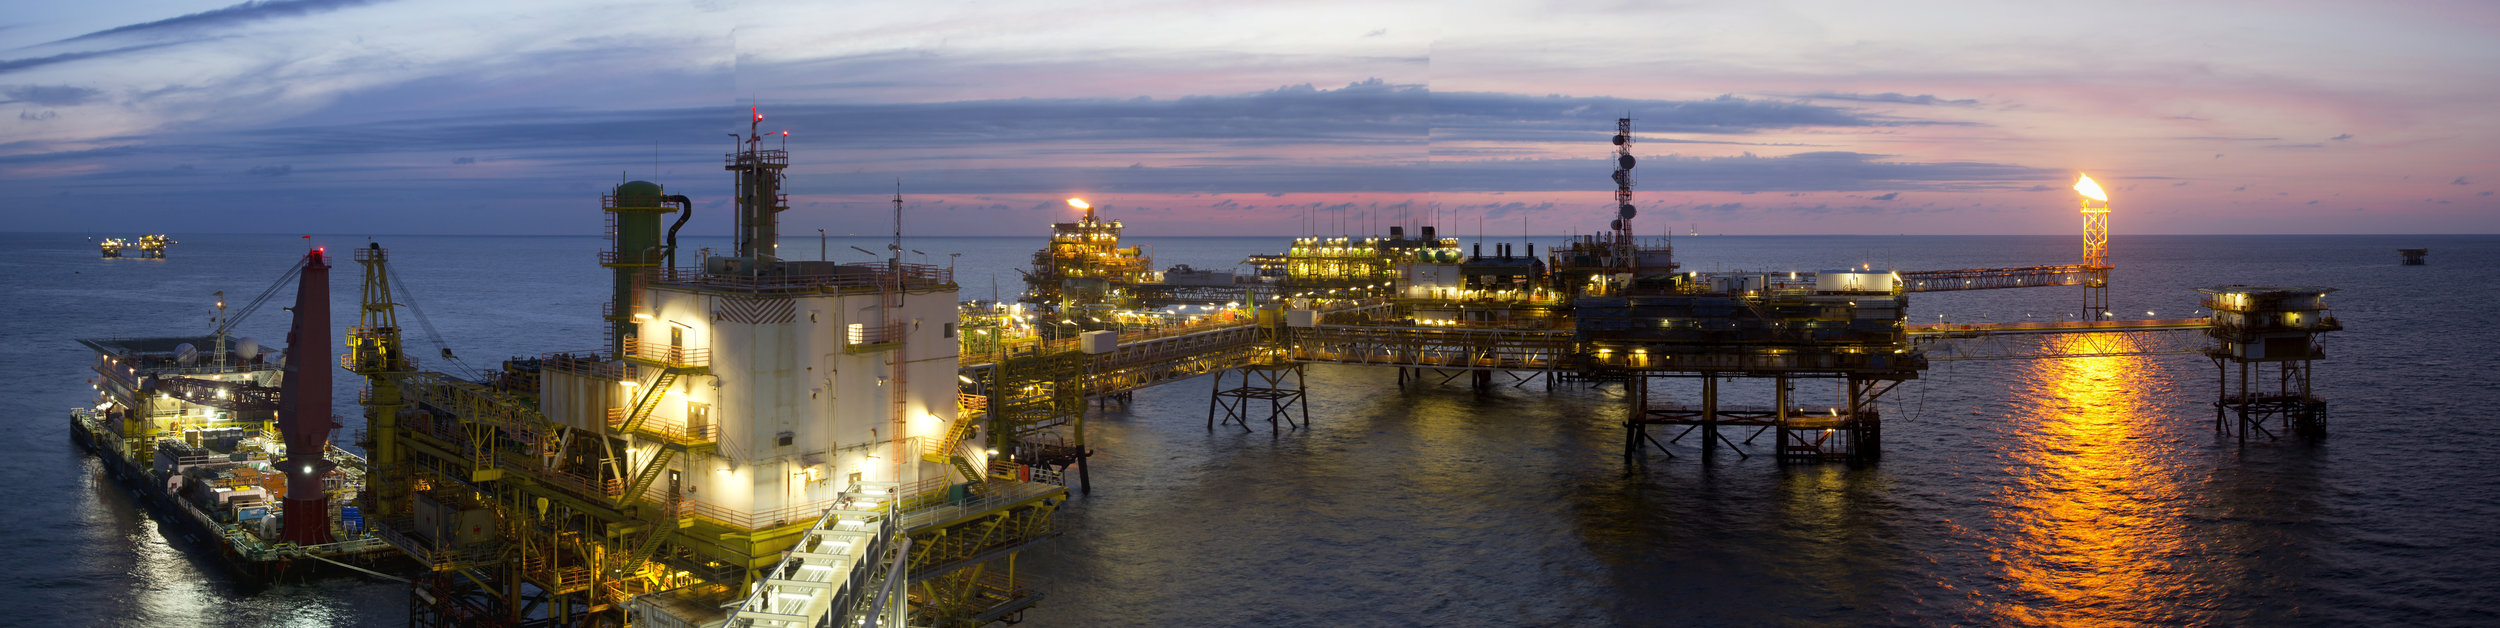 We Help      Oil and Gas Companies   Through commercial and technical expertise